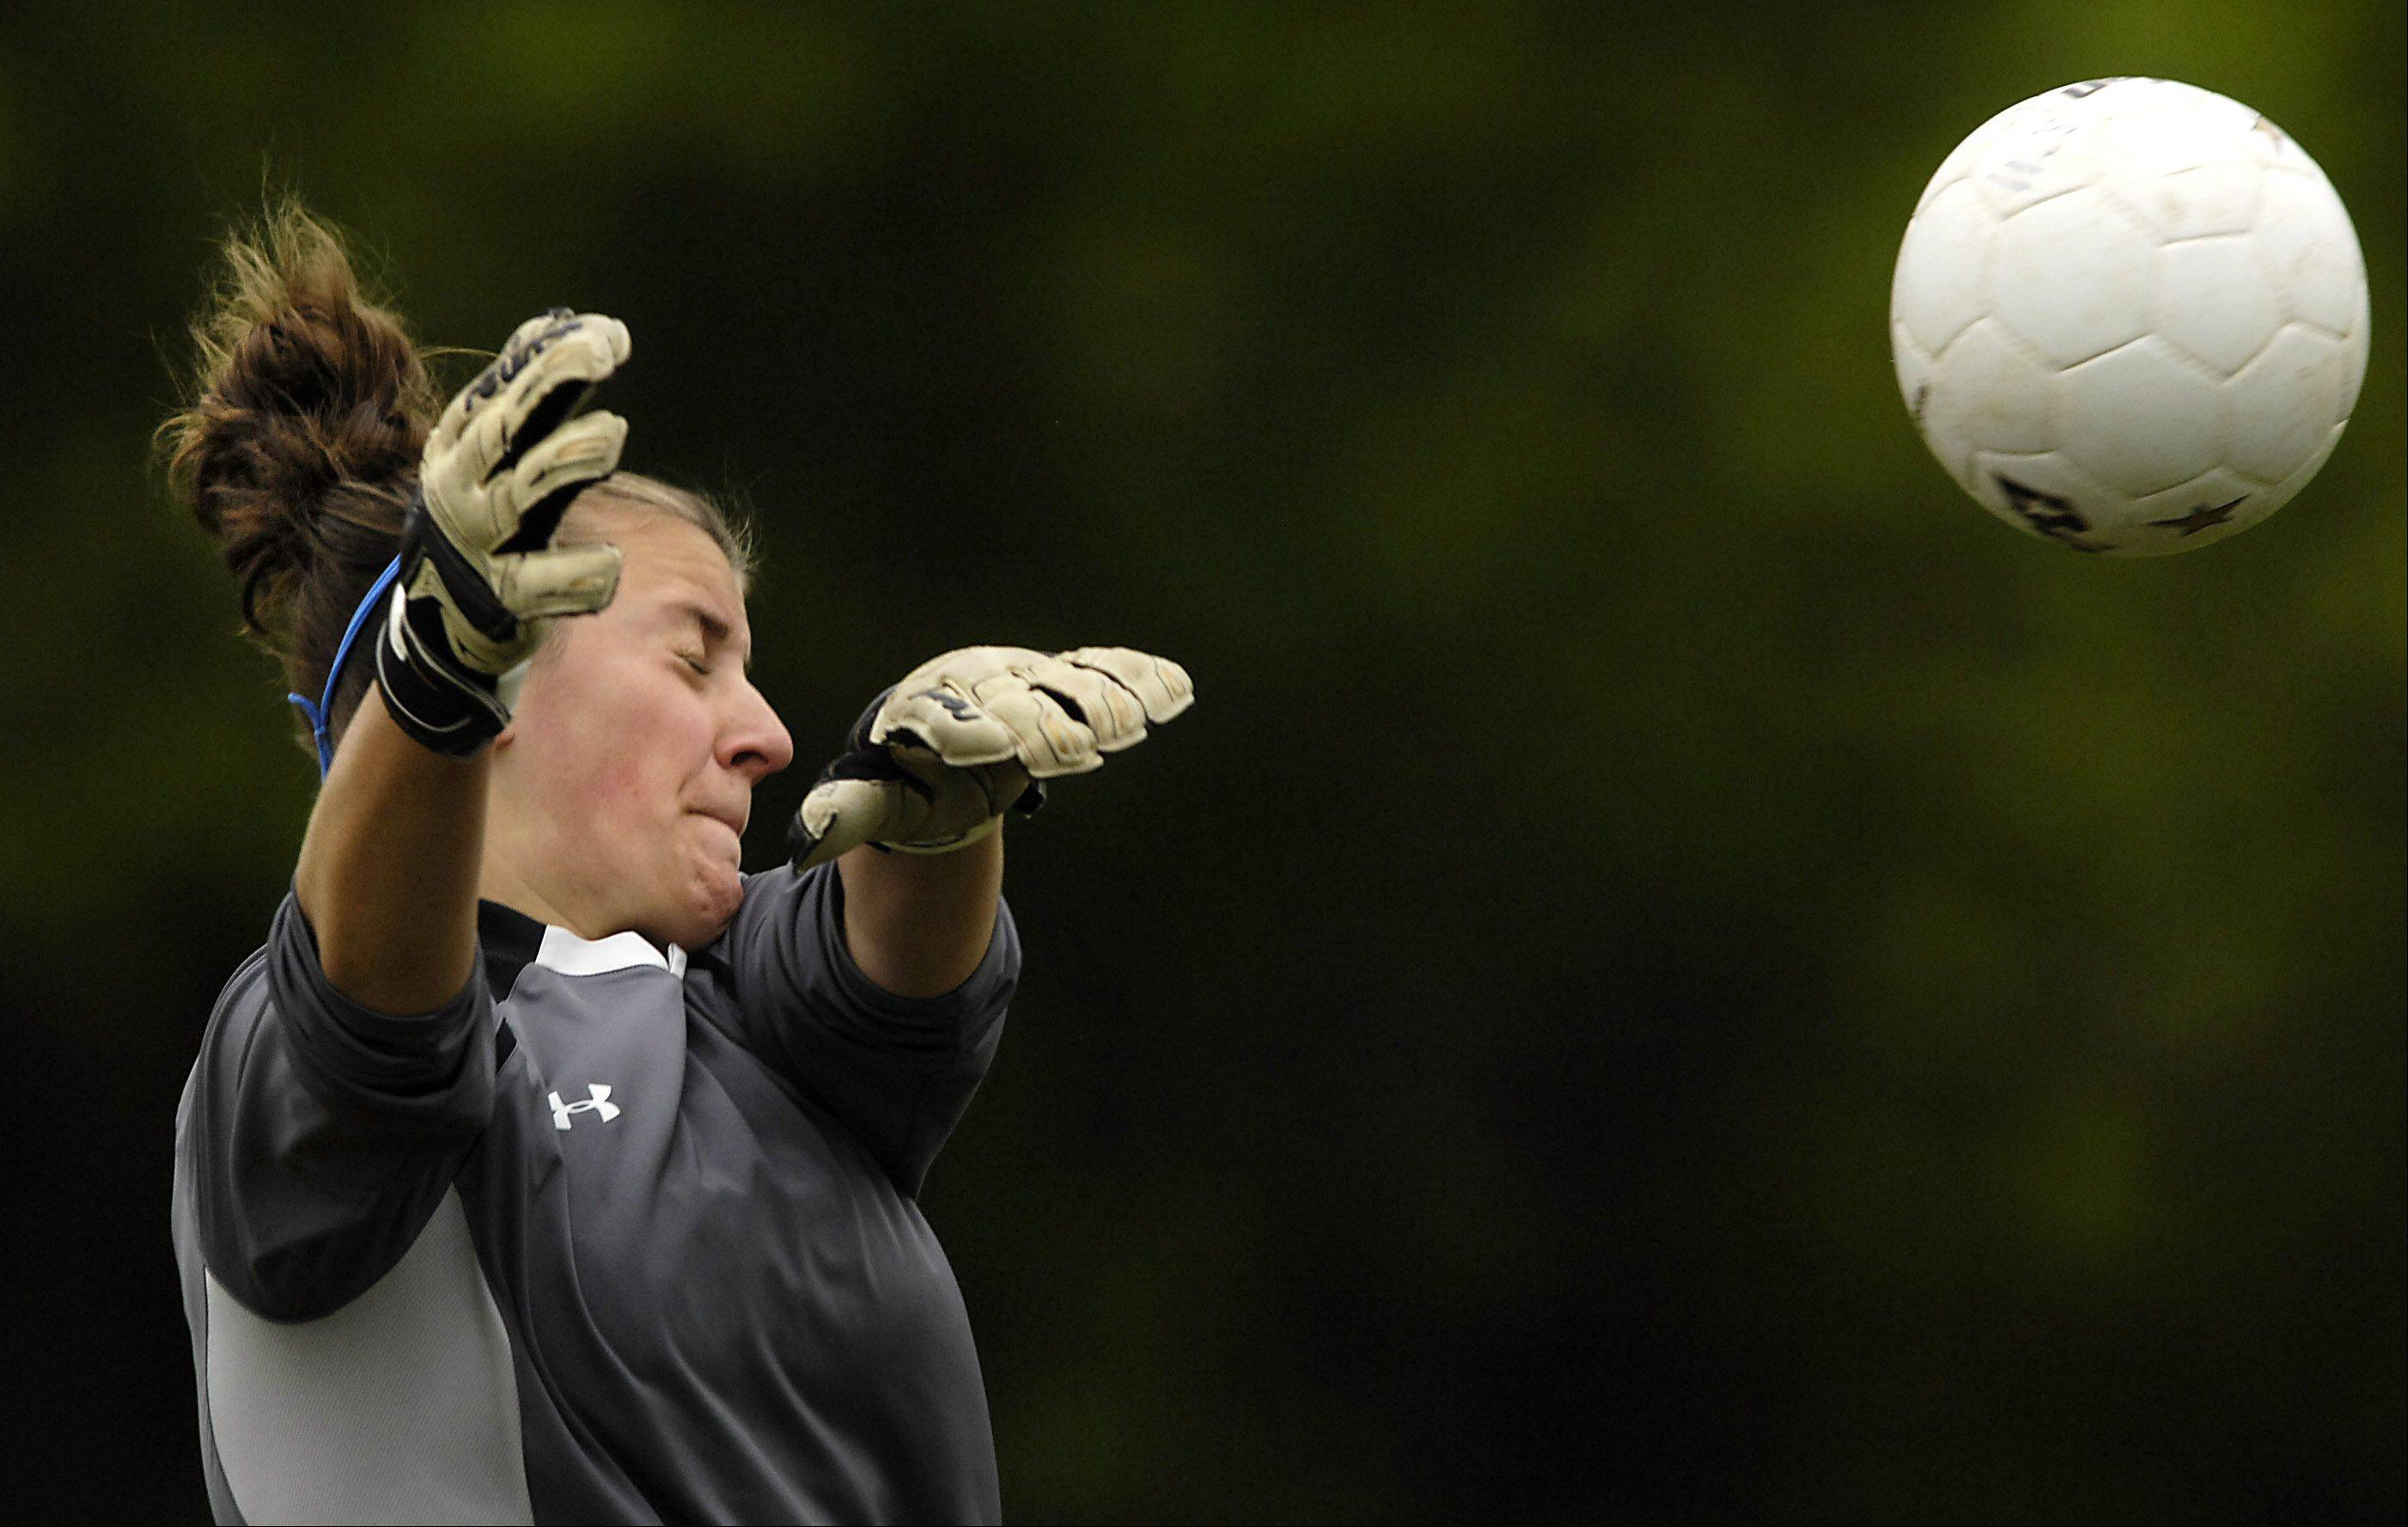 Monica Hinderer, here making a save for Willows Academy during her high school days, is one key for the Harper College team's national tournament effort, which gets under way today in New York.